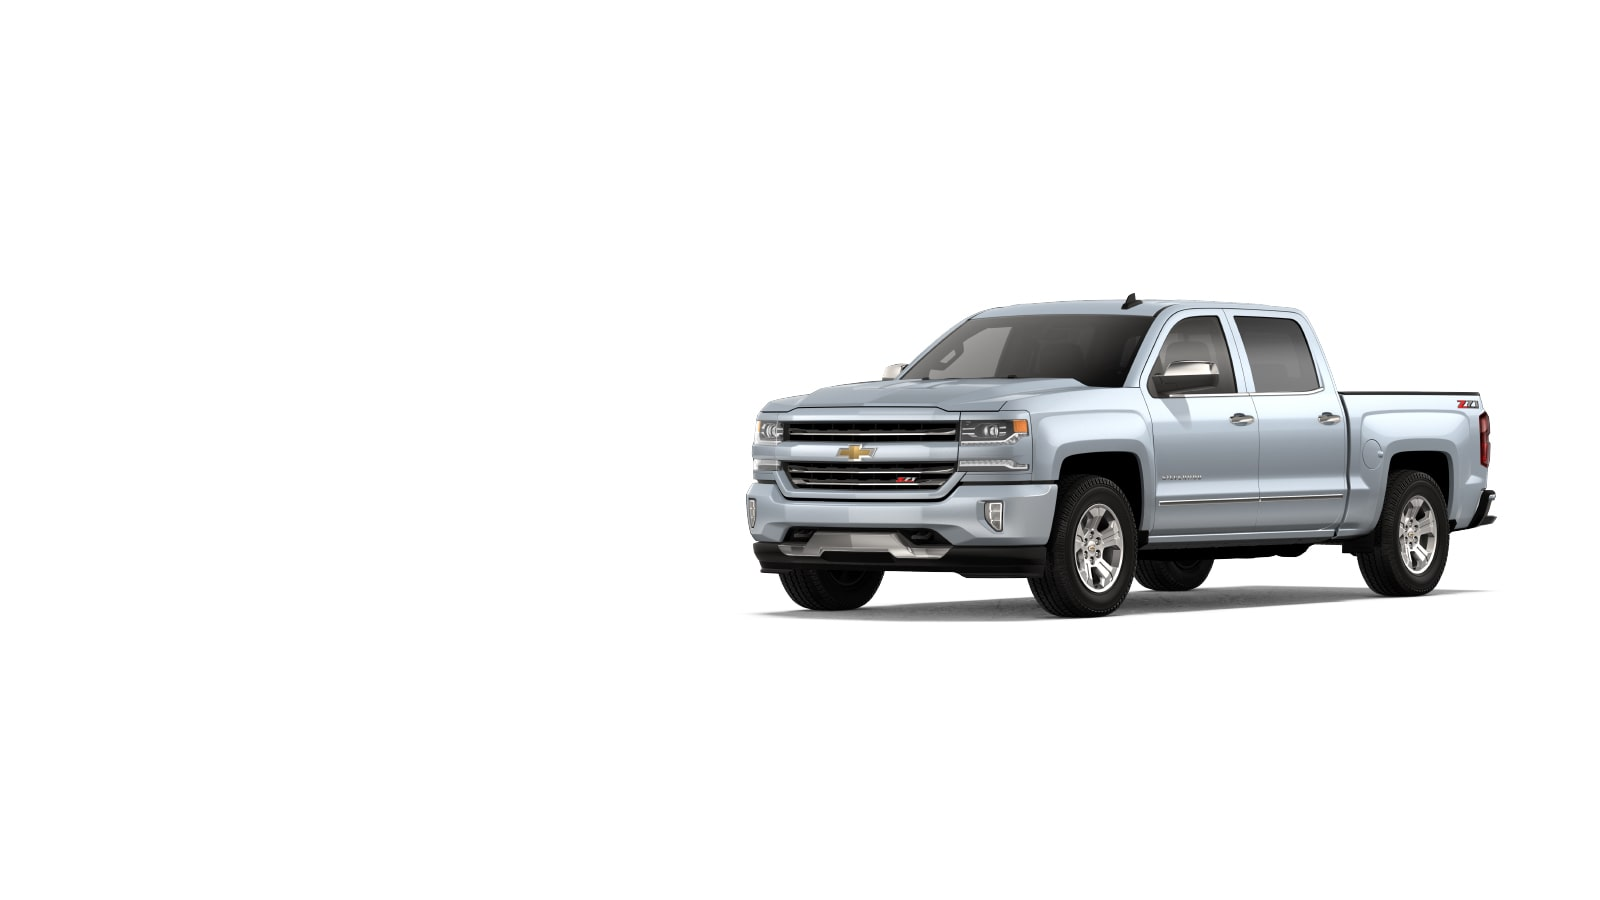 hight resolution of photograph of the chevy silverado 1500